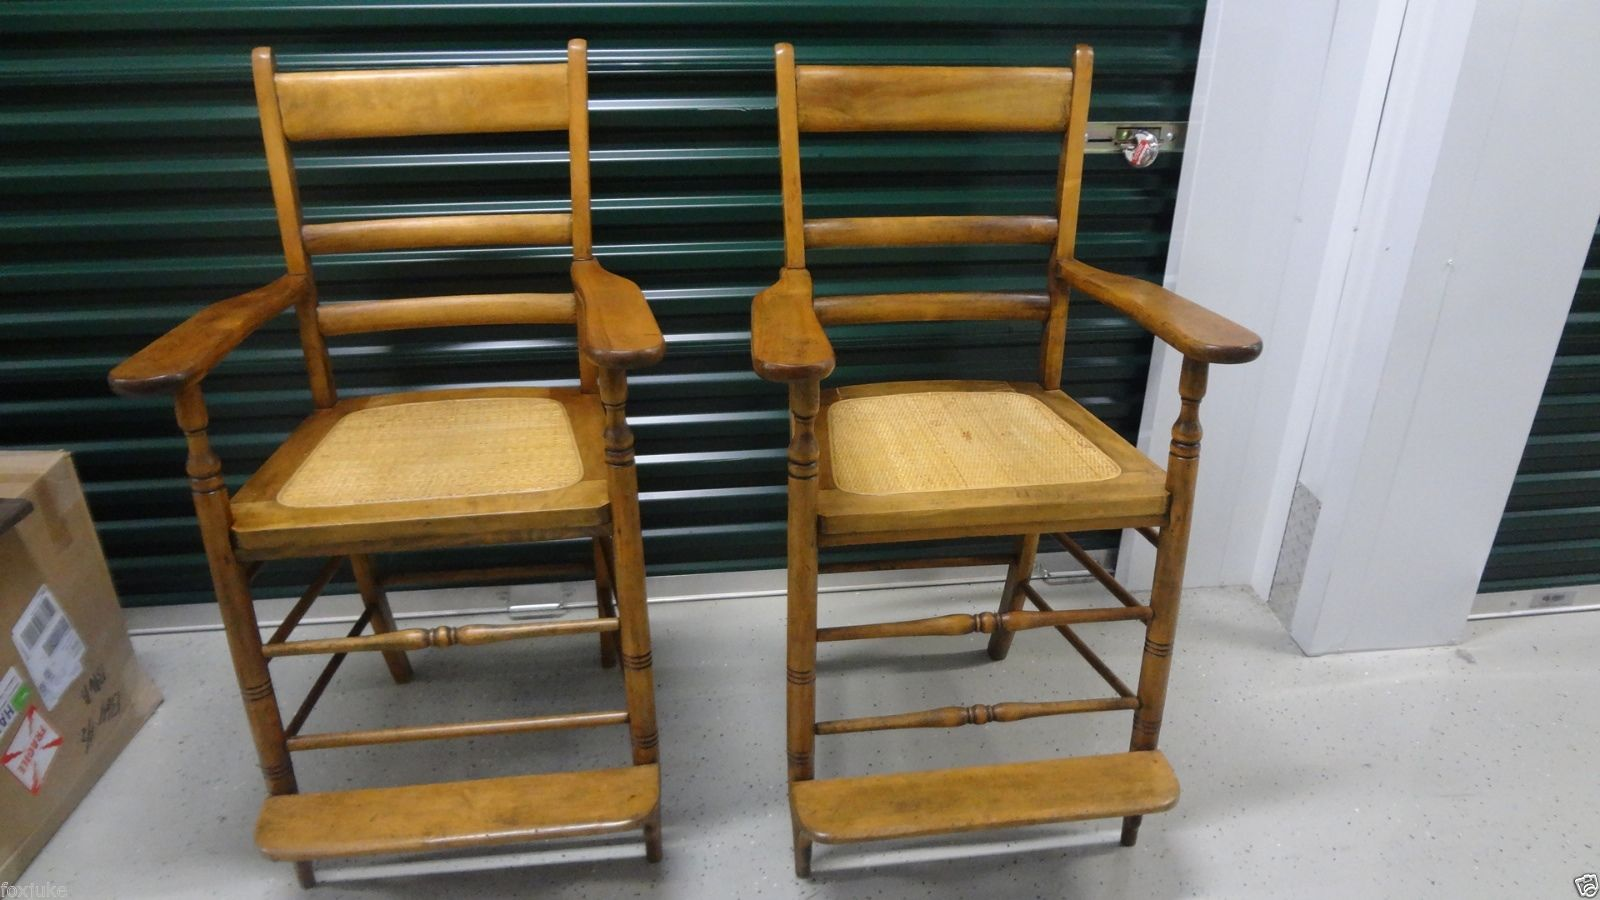 Beau Pair Of Beautiful, Maple Antique Billiard Saloon Spectator Chairs